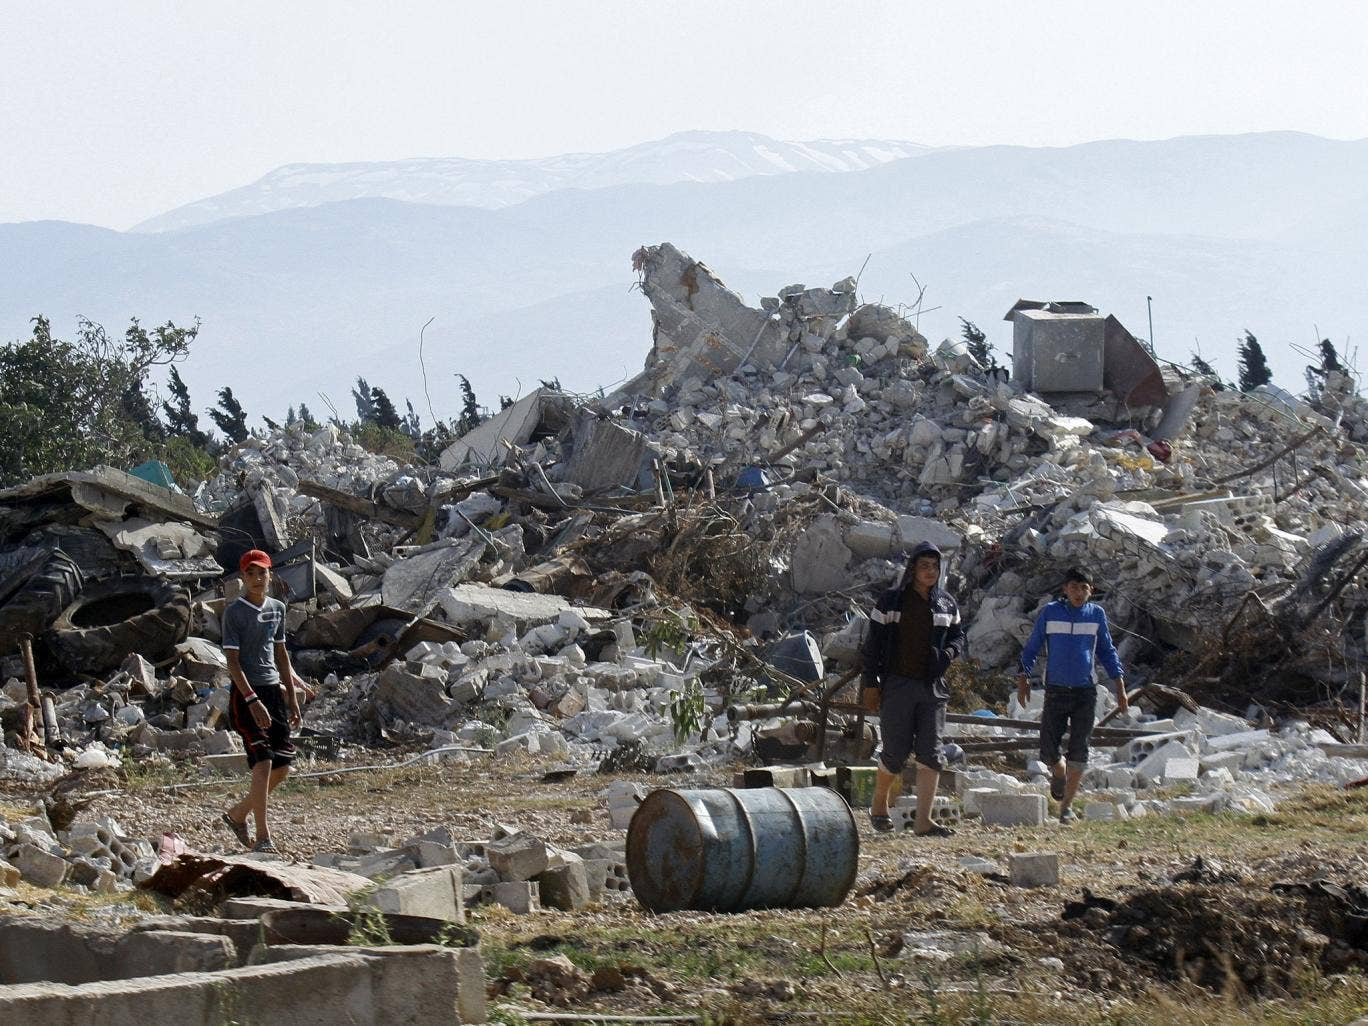 Syrian youths walk amongst the rubble in the village of al-Hamidiyeh, north of Qusayr, in Homs province